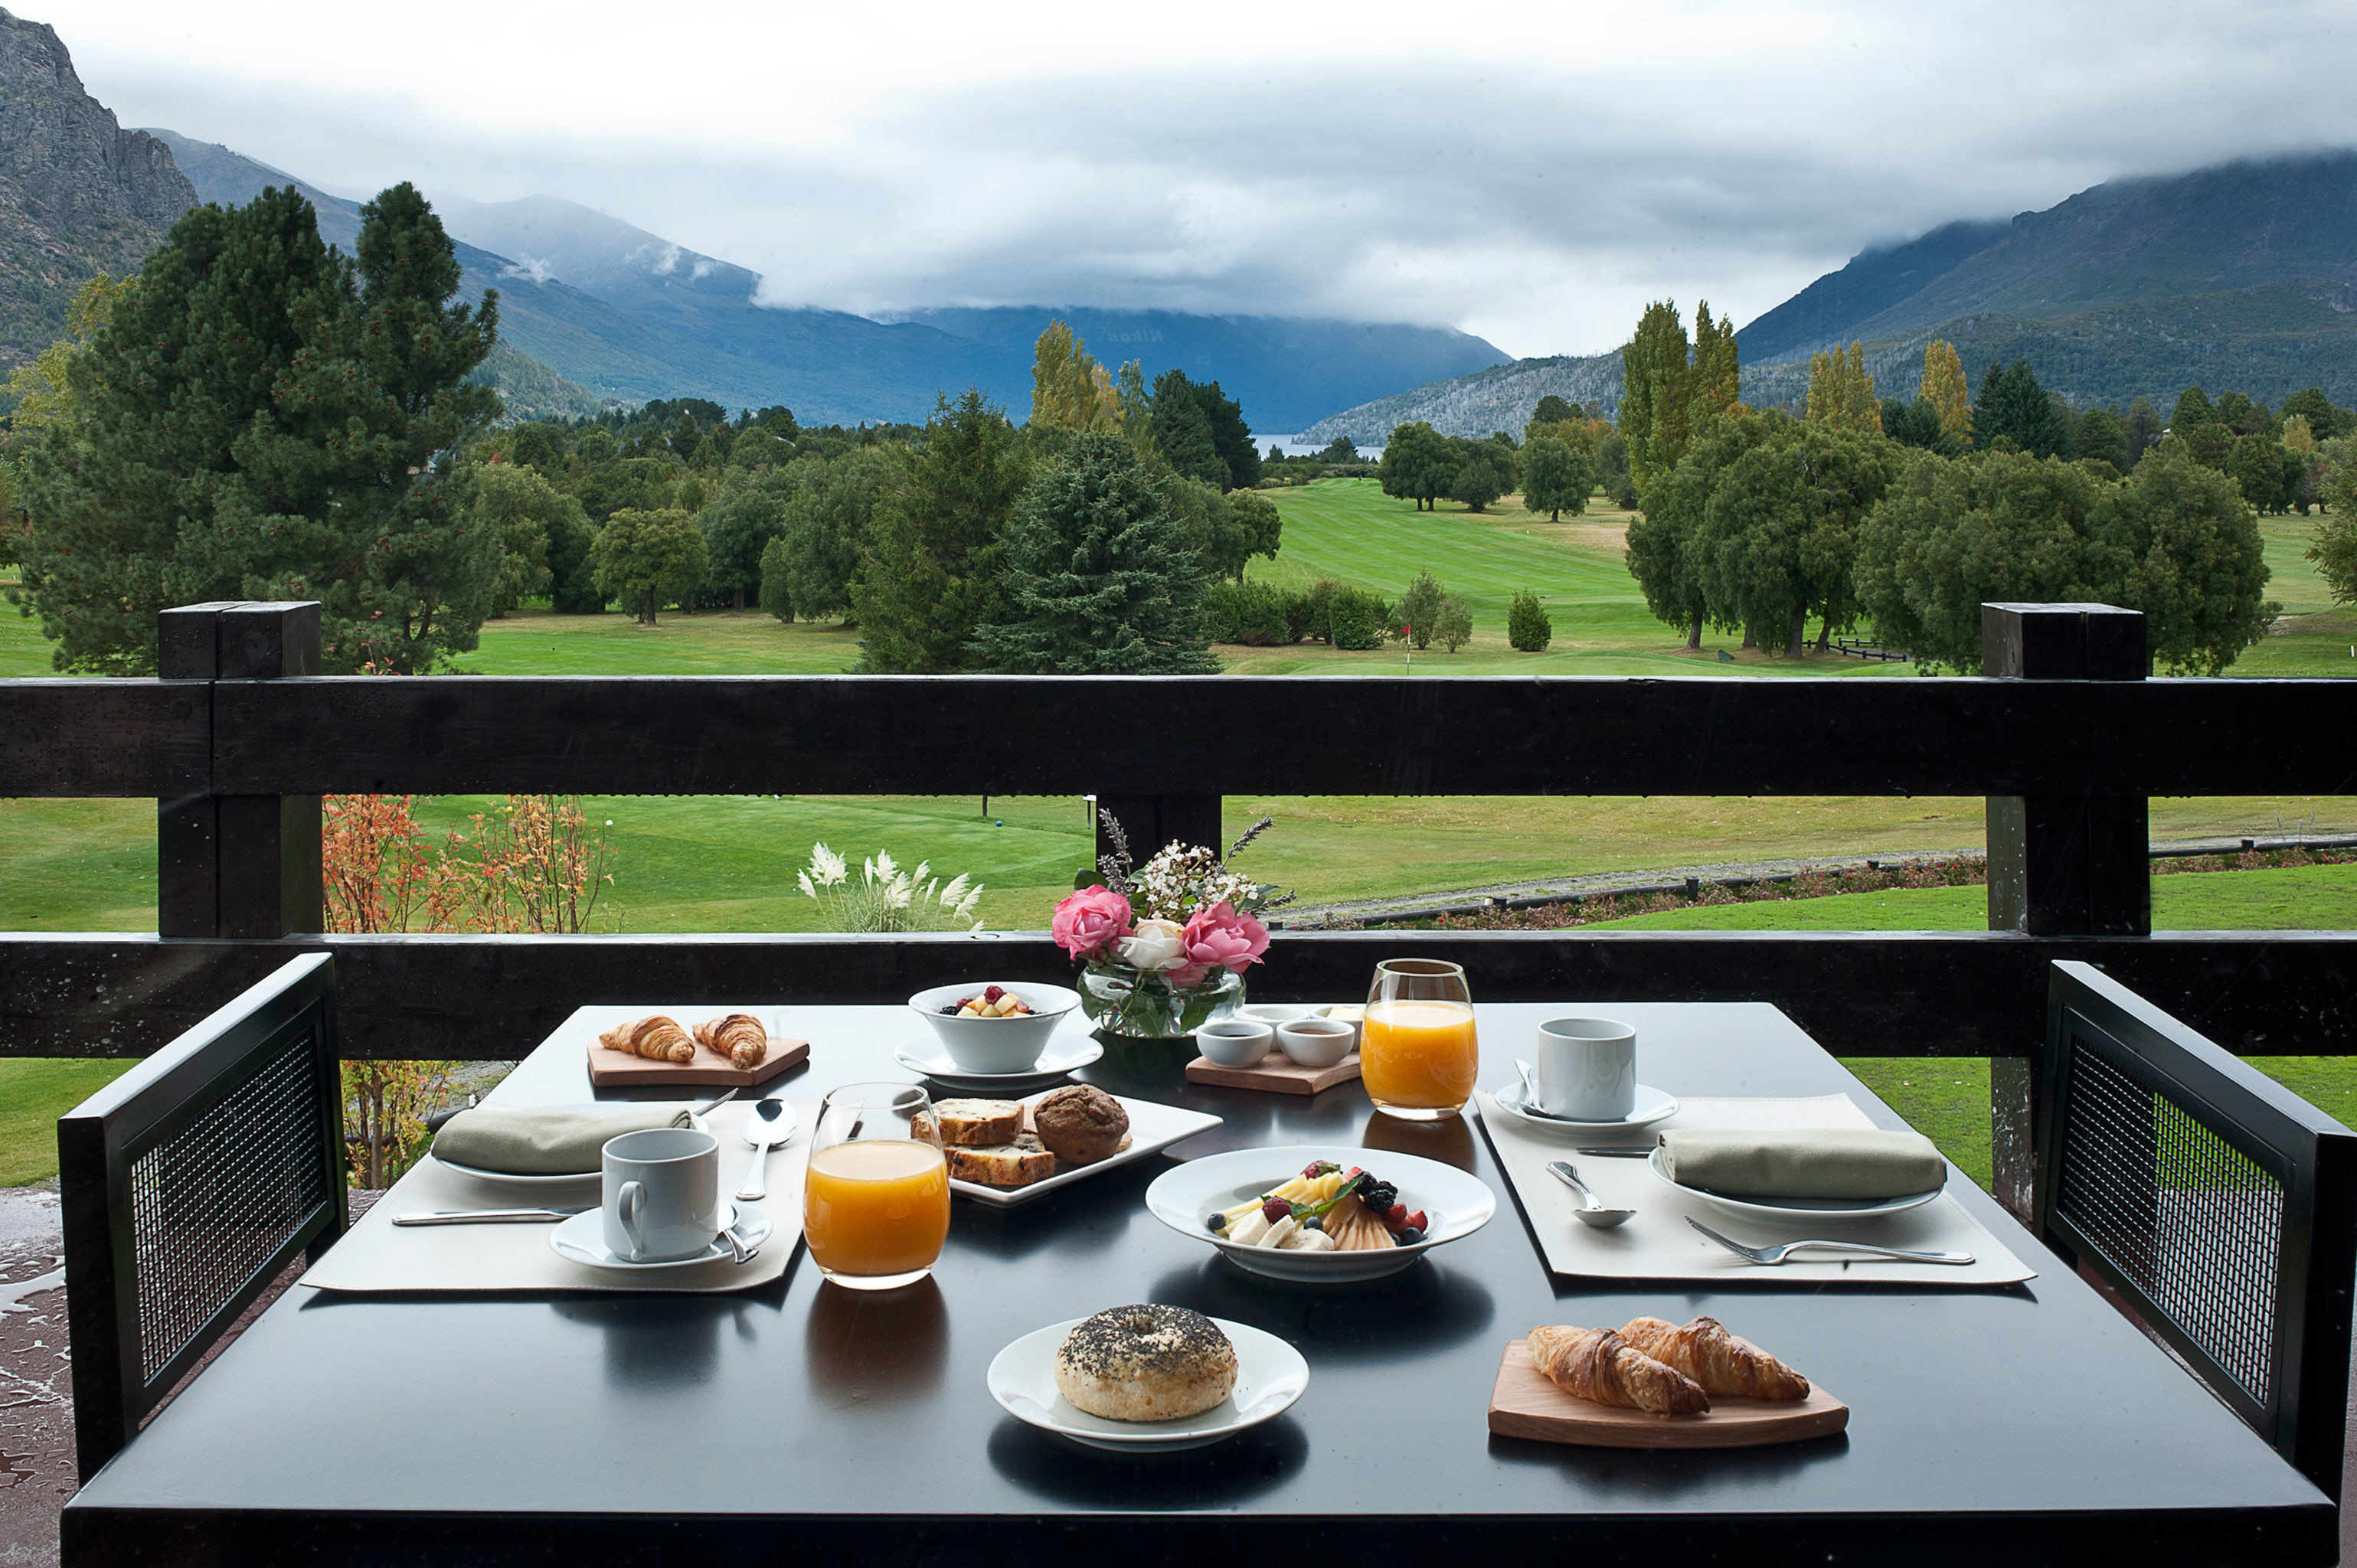 Country Dining Drink Eat Lodge Rustic tree plate mountain overlooking